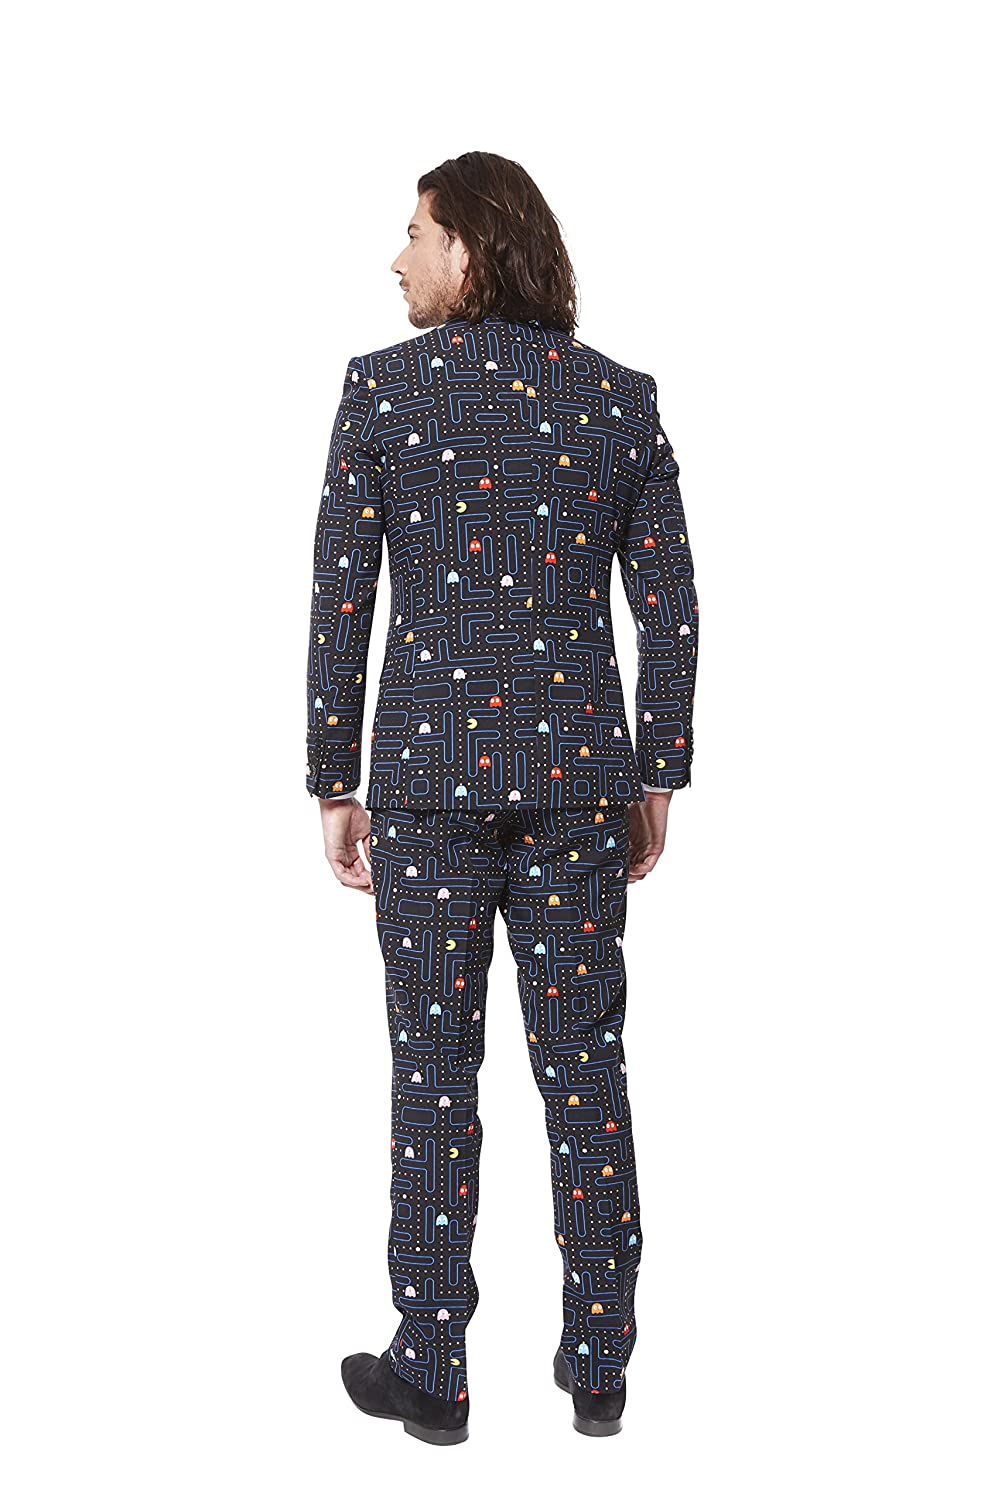 Mens 'PAC MAN' Party Suit and Tie by OppoSuits BuyCostumes OSUI-0045-EU46-PARENT